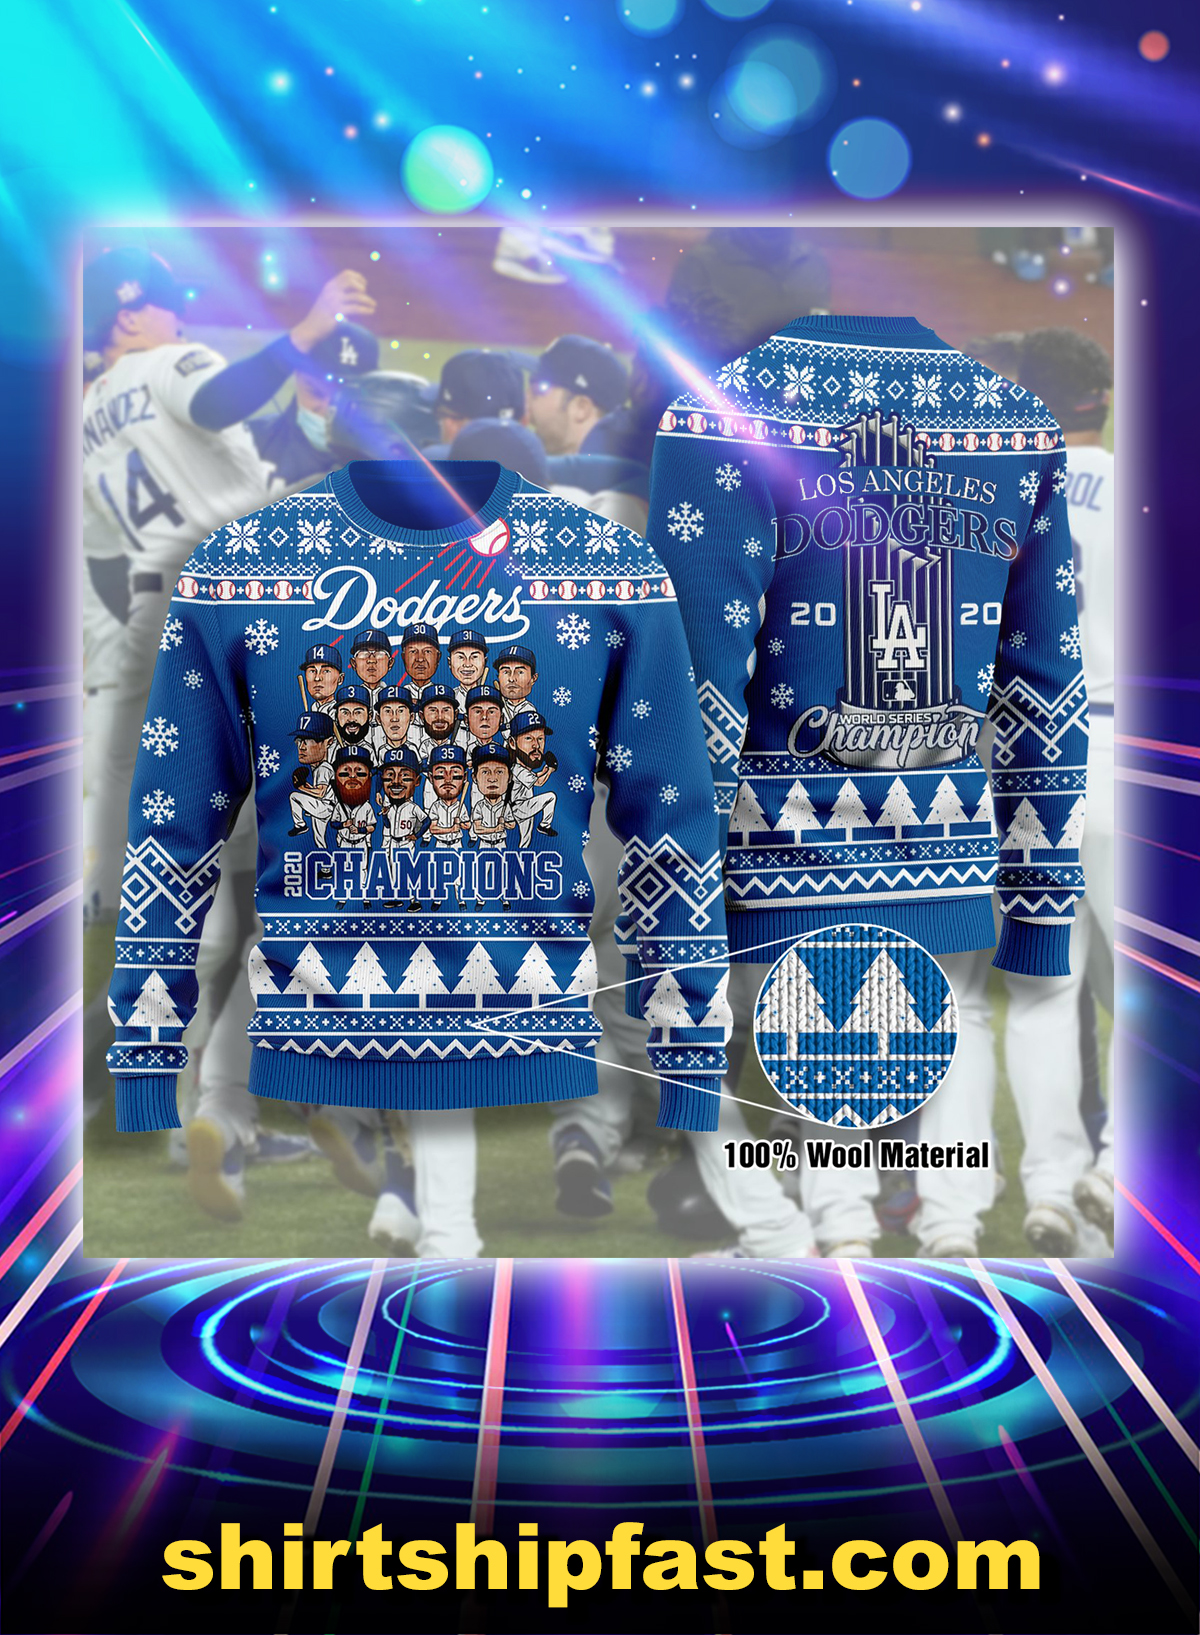 LA dodgers 2020 champions ugly christmas sweatshirt - Picture 1